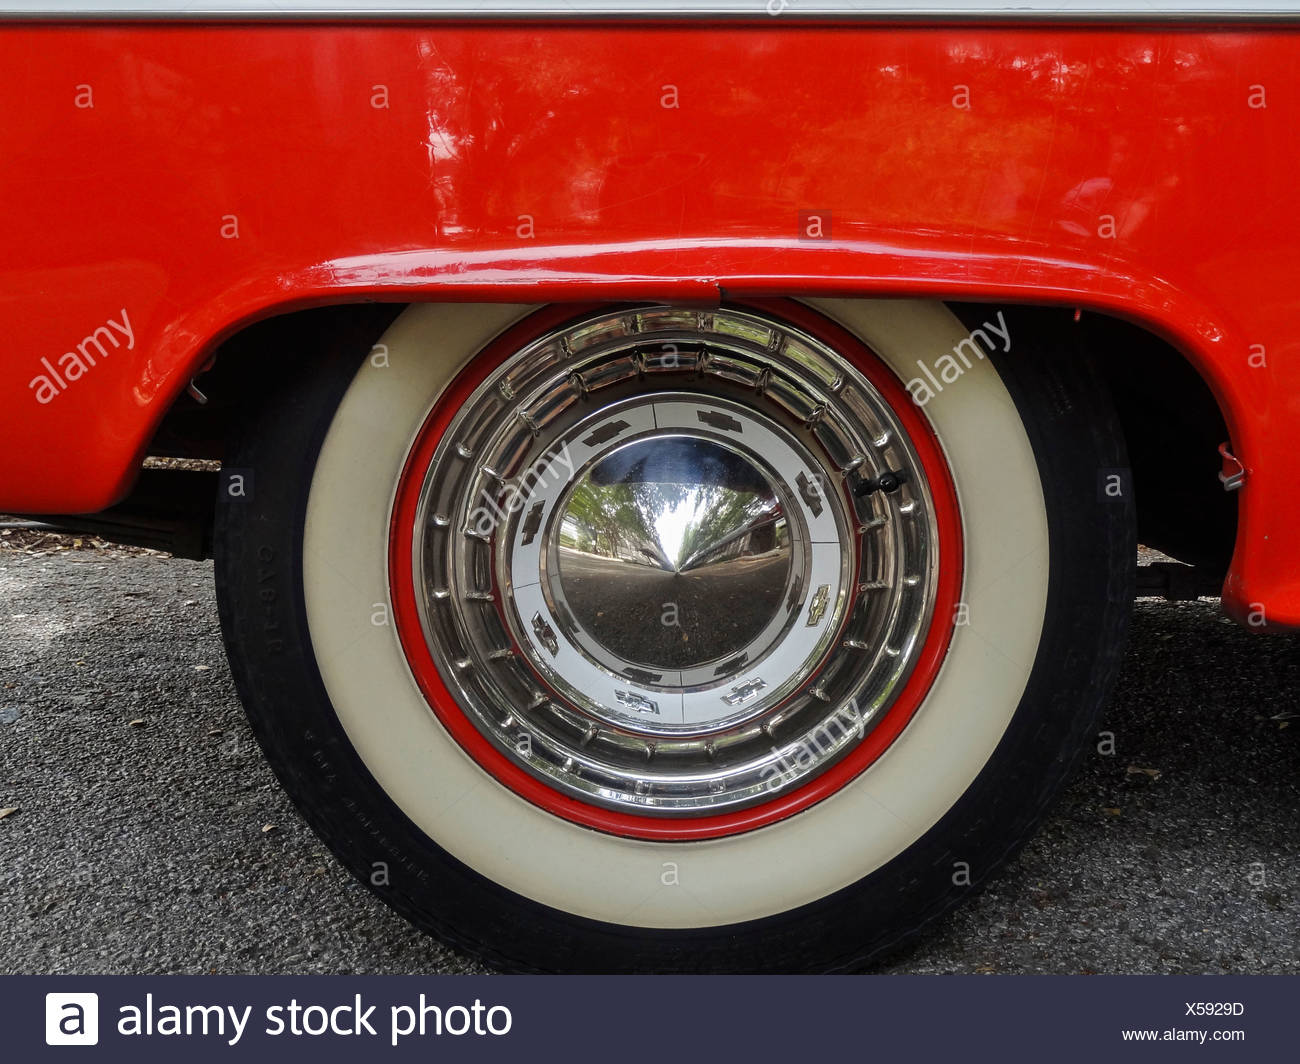 1955, Classic car, Chevrolet, Bel Air, General Motors, New Braunfels, old, car, red, white, Texas, USA, United States, America, - Stock Image